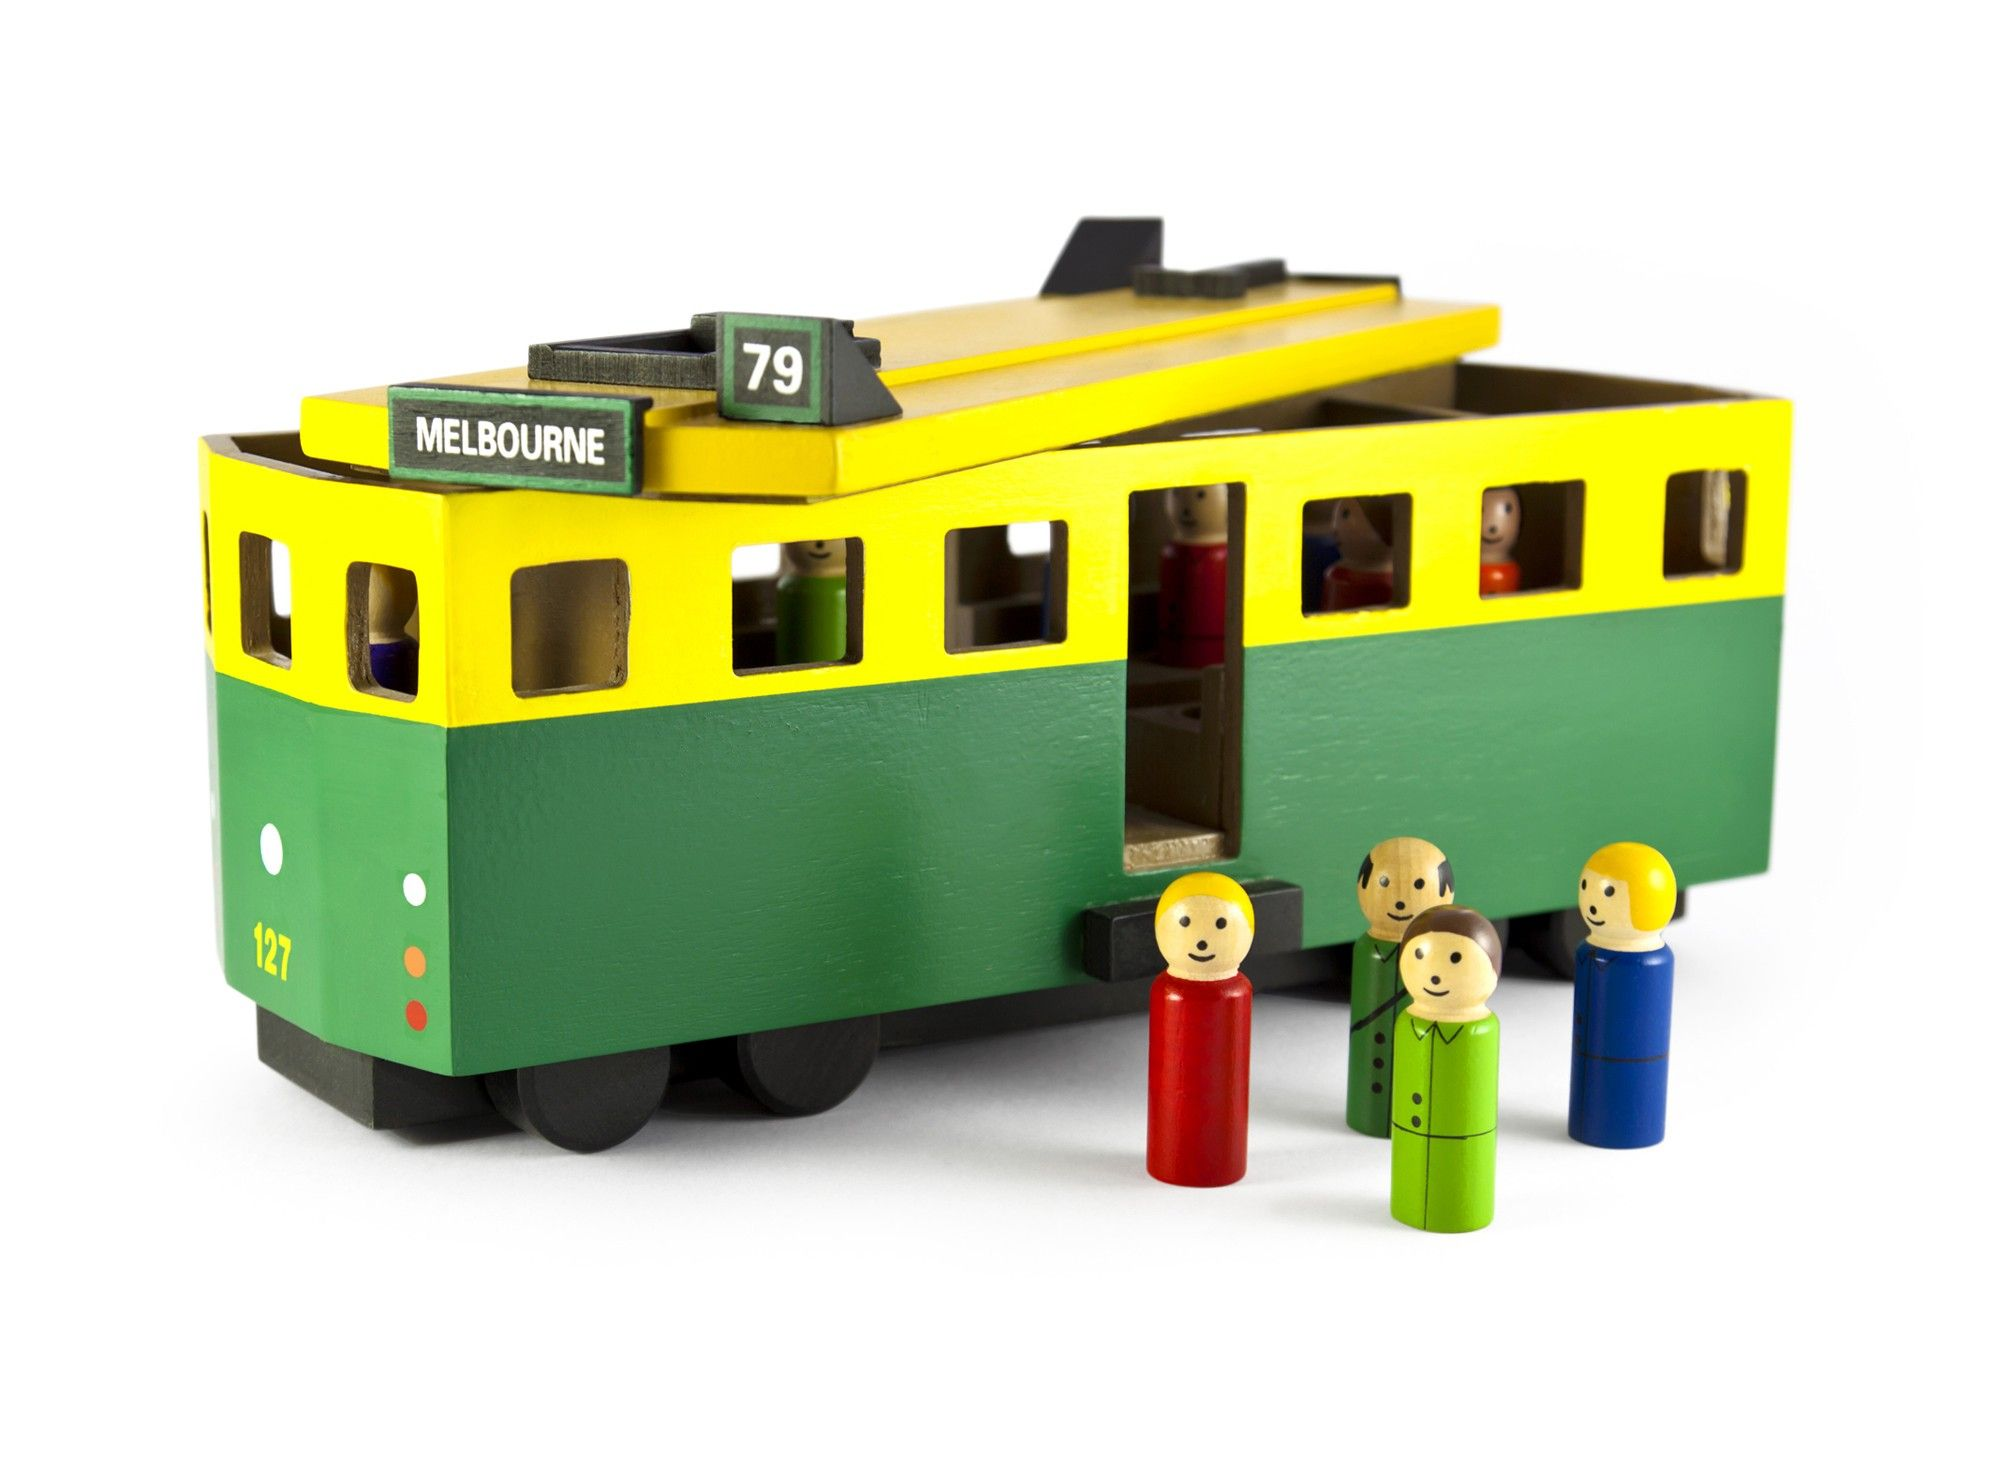 Toy Melbourne Make Me Iconic Melbourne Tram Toys Big Dreams Baby